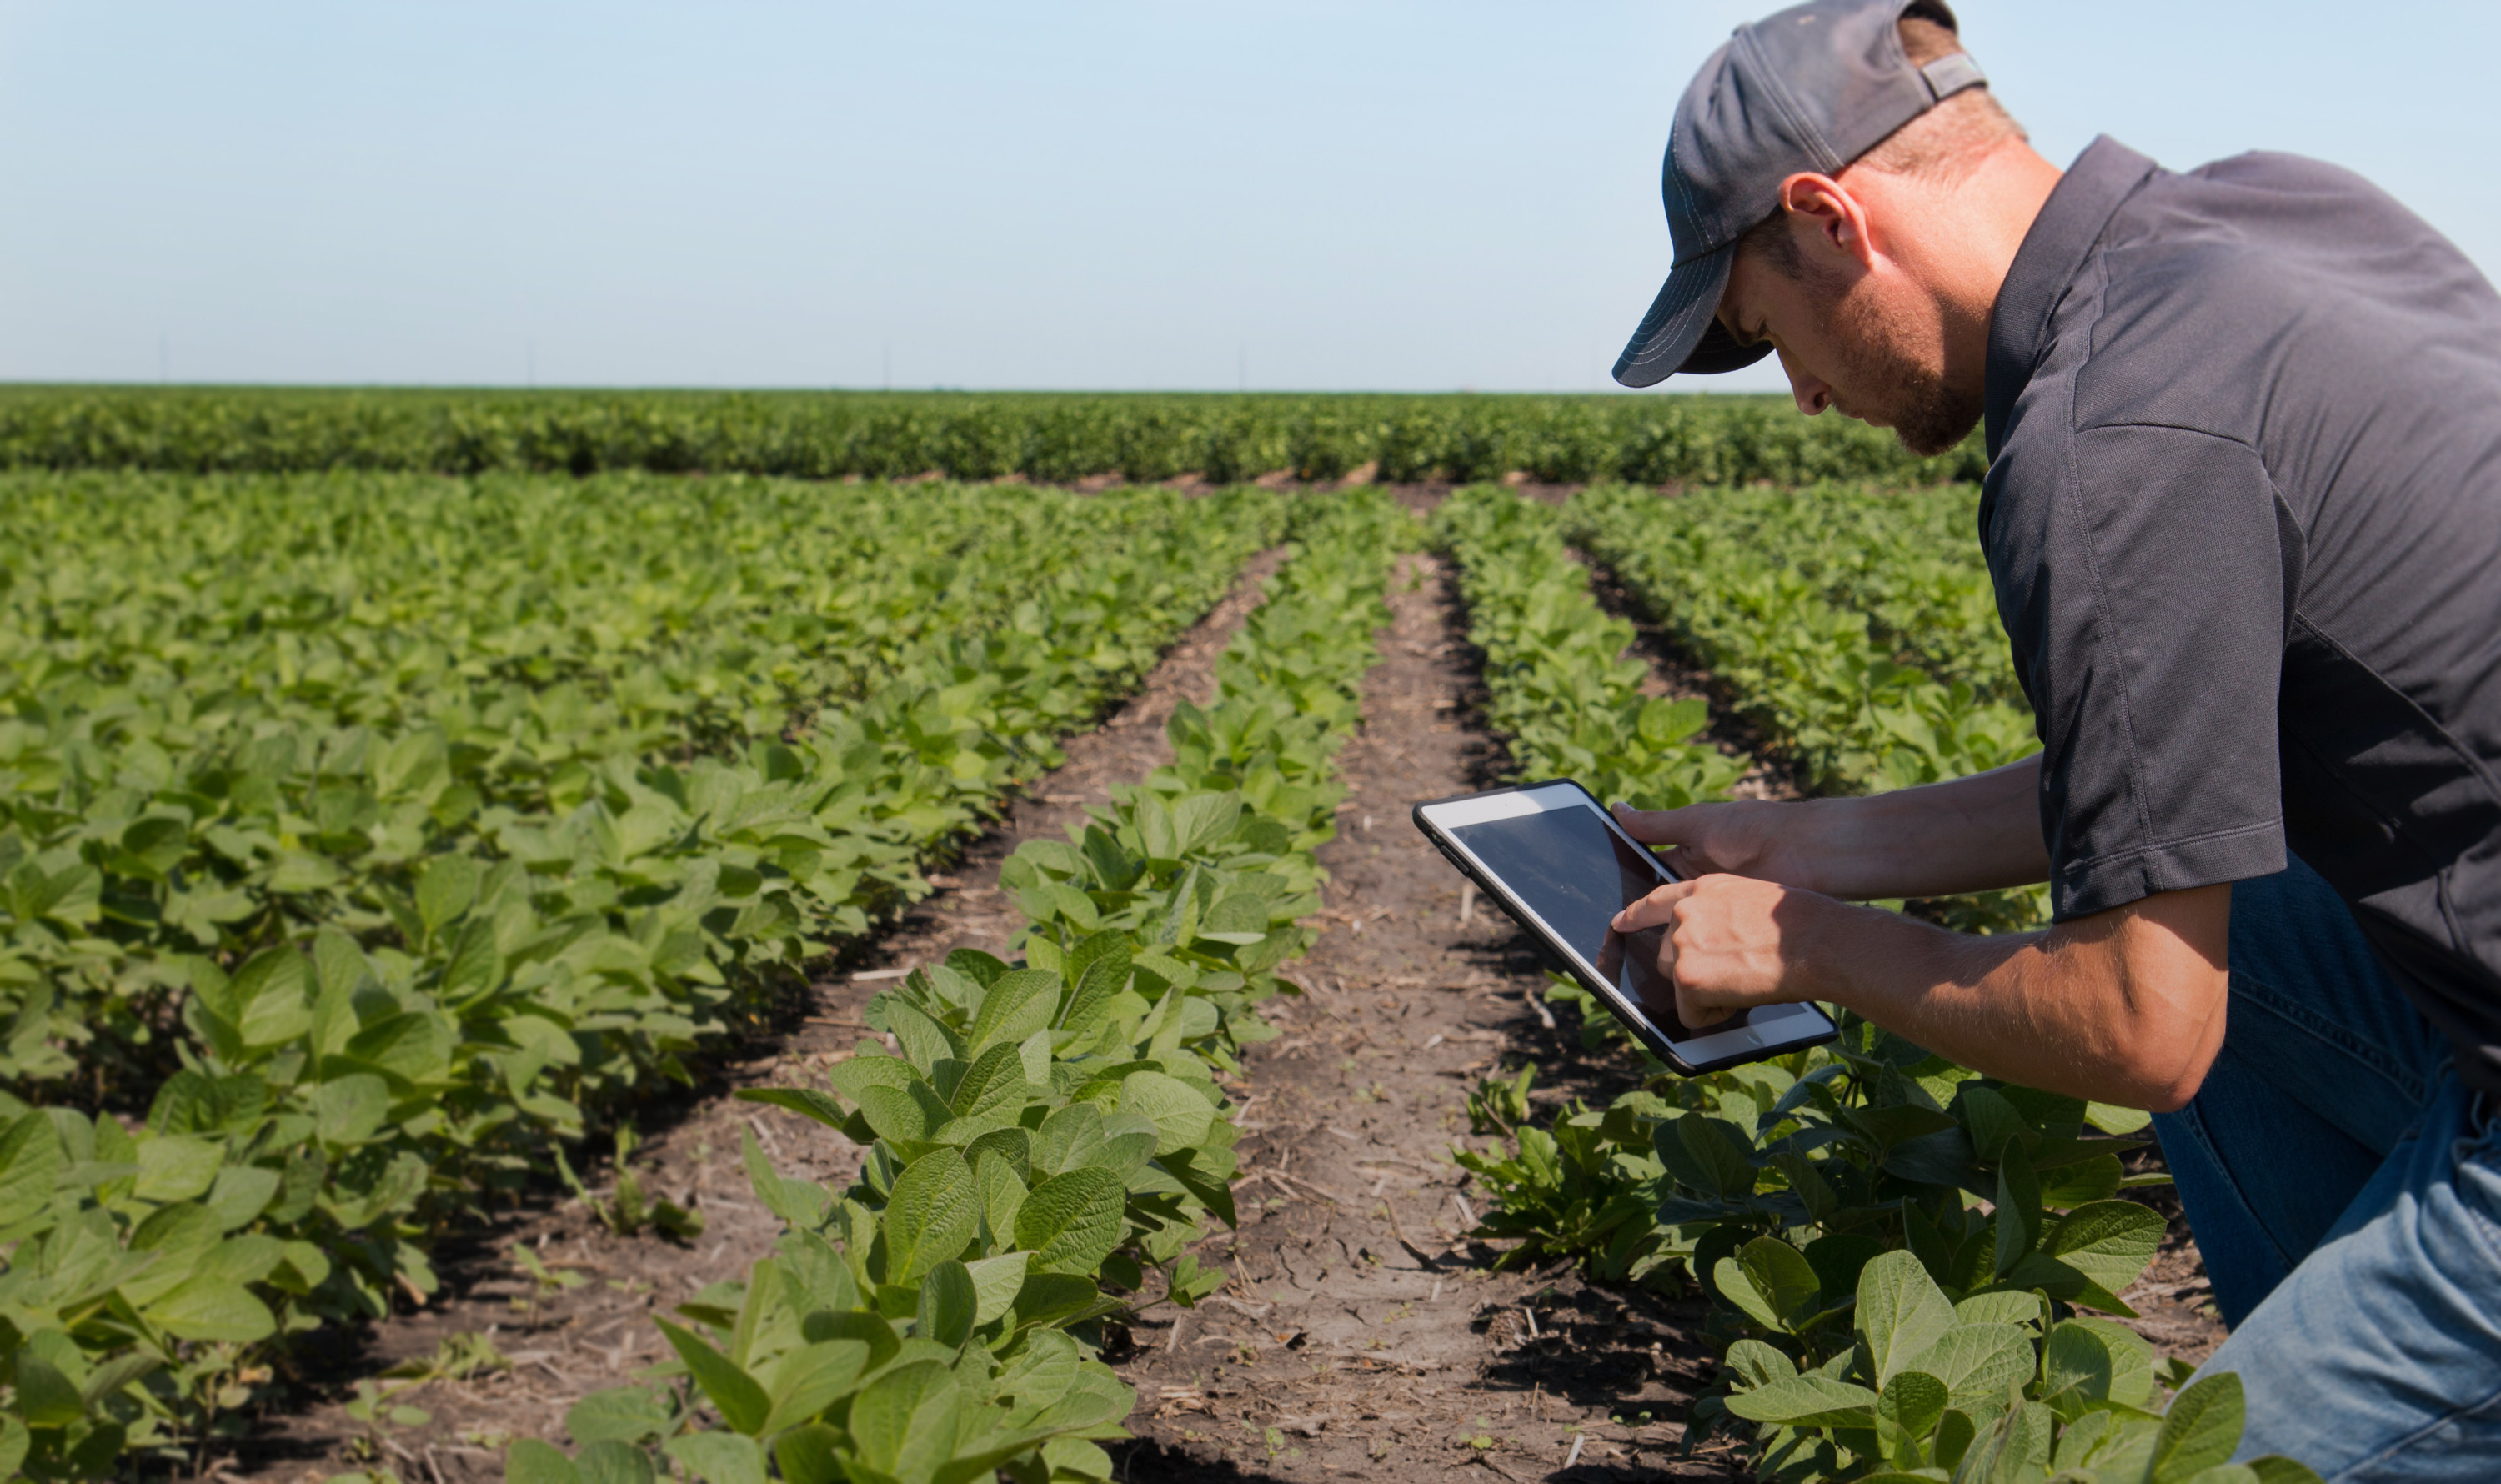 A man uses an iPad while in a field of crops.